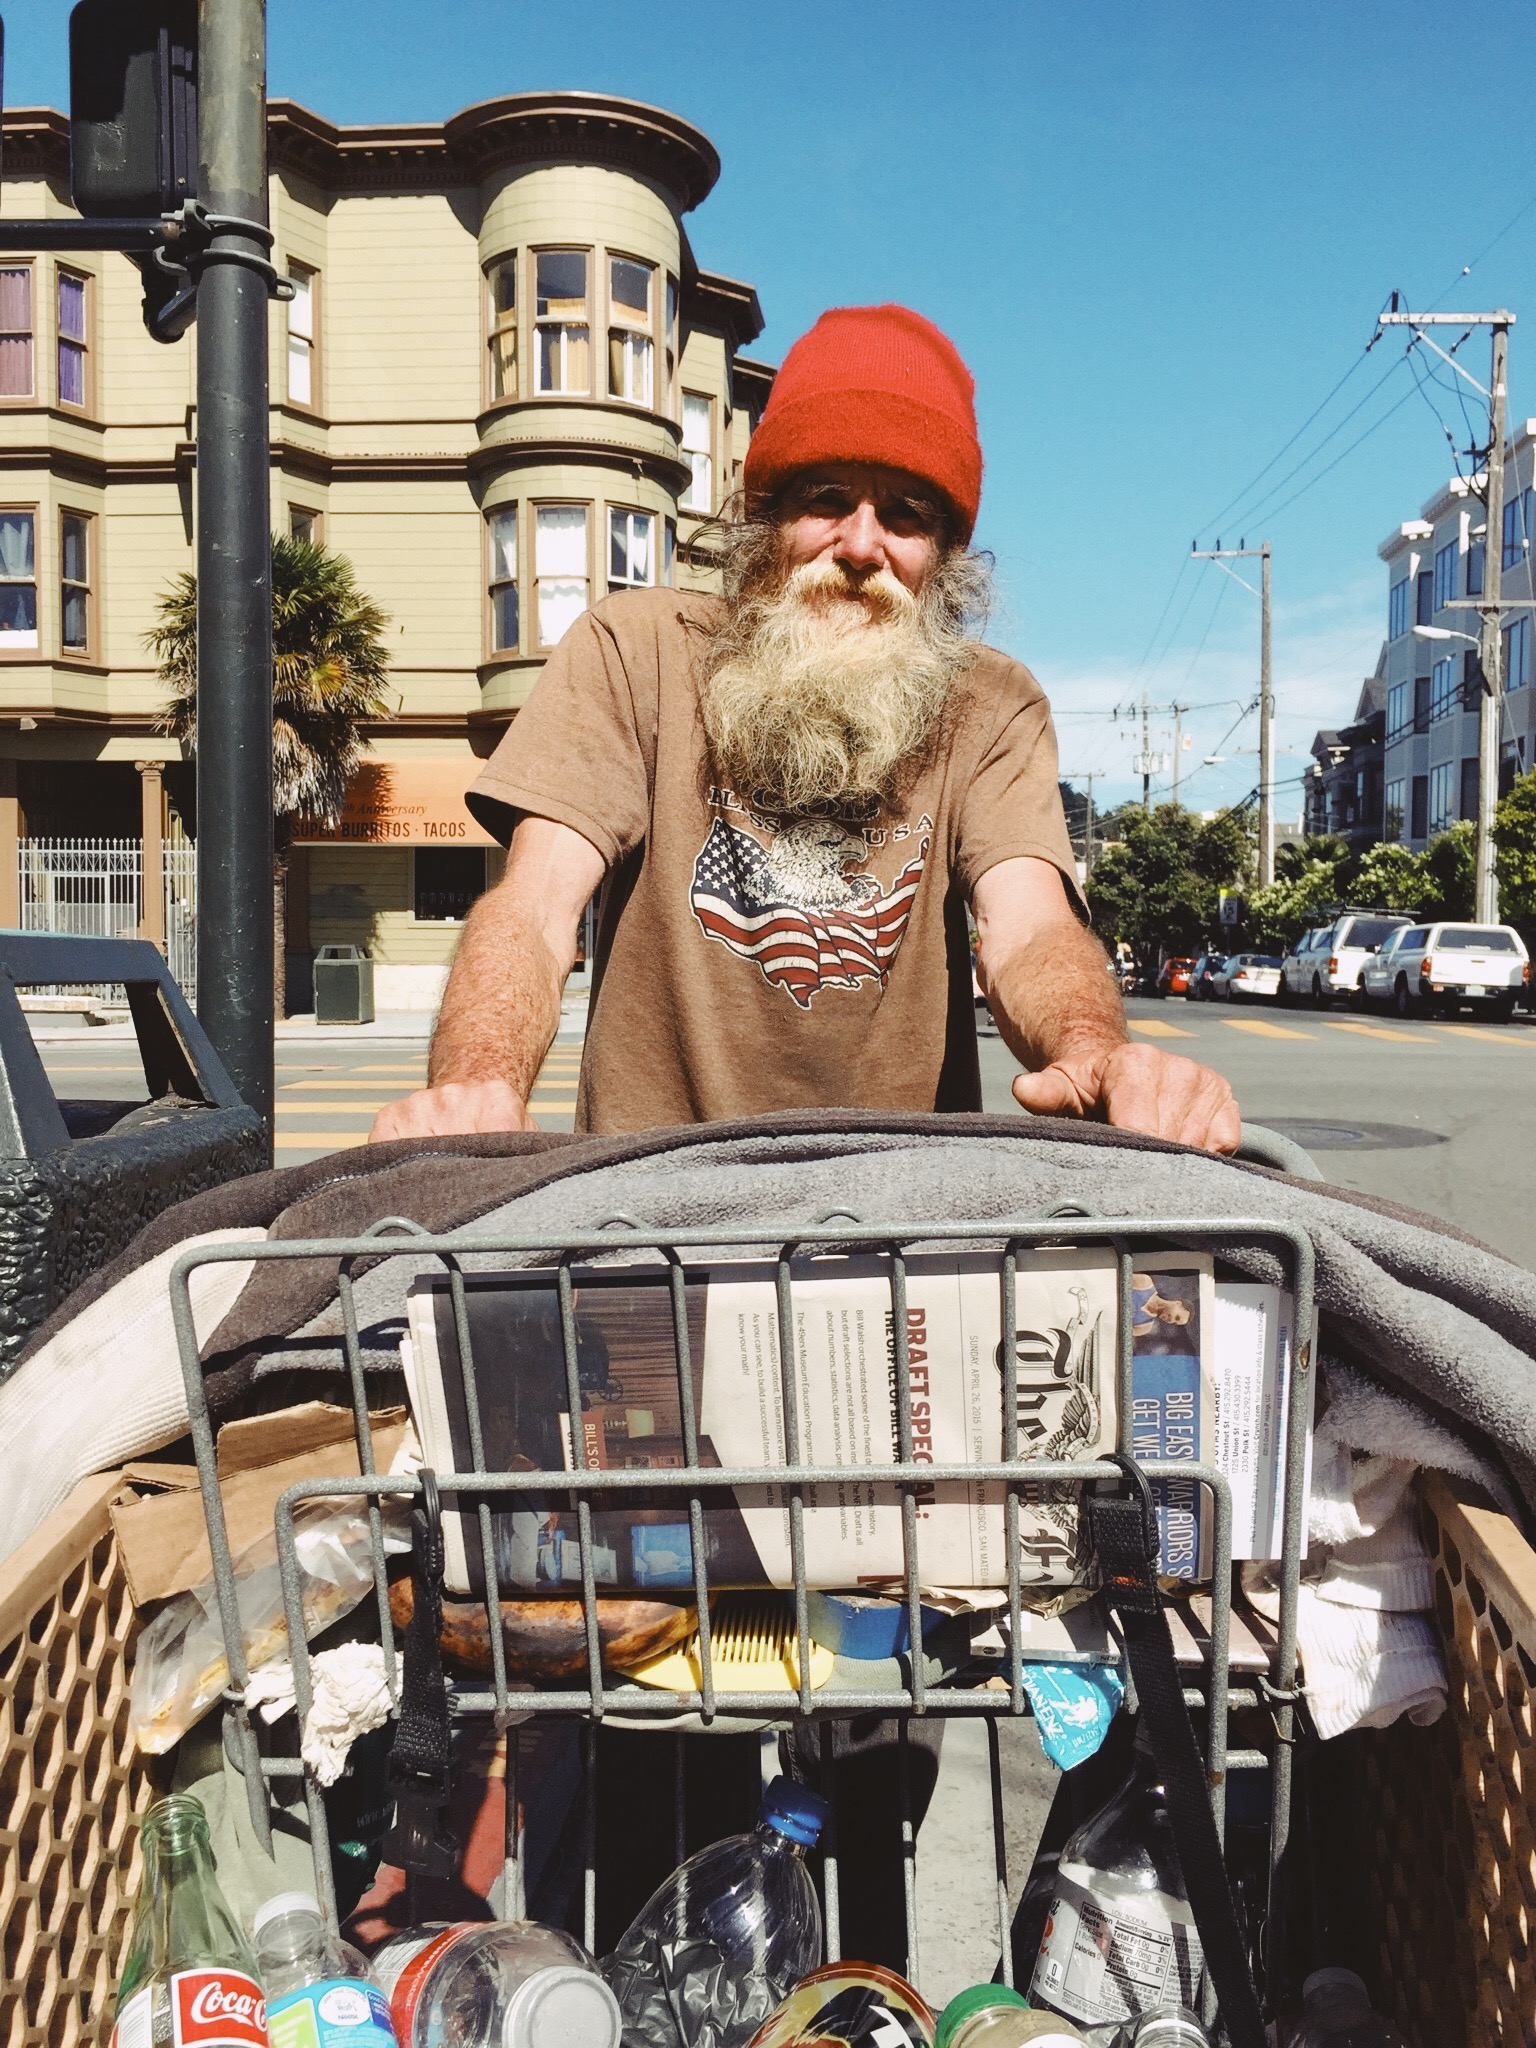 Laid out on blankets and sheets, assembled in cardboard boxes and trundled in pirated shopping carts, is the inventory of San Francisco's other entrepreneurial class: the recyclers, reclaimers, and miscellaneous retailers who make their living on the street many of whom absorb the aftershocks of true disruption. -